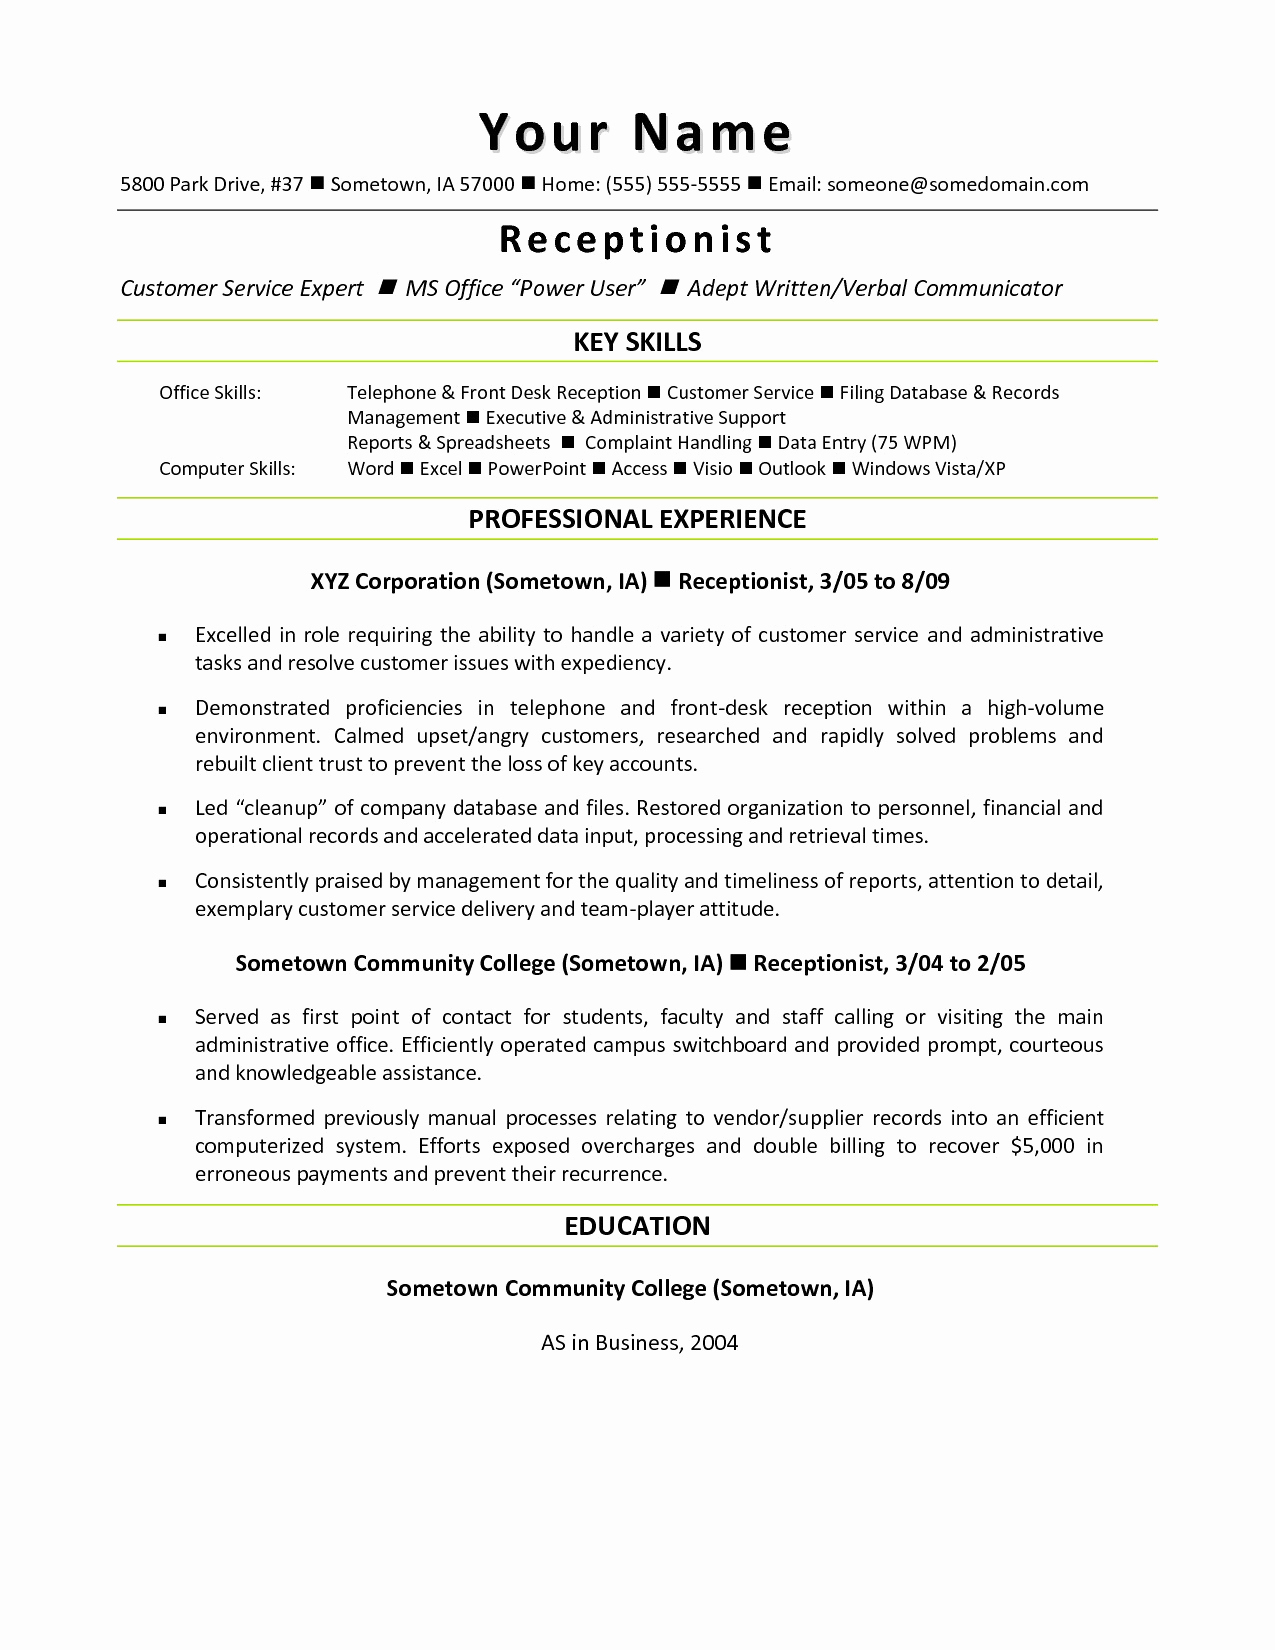 Letter Of Agreement Template - Letter Agreement Examples Luxury Letter Agreement Template